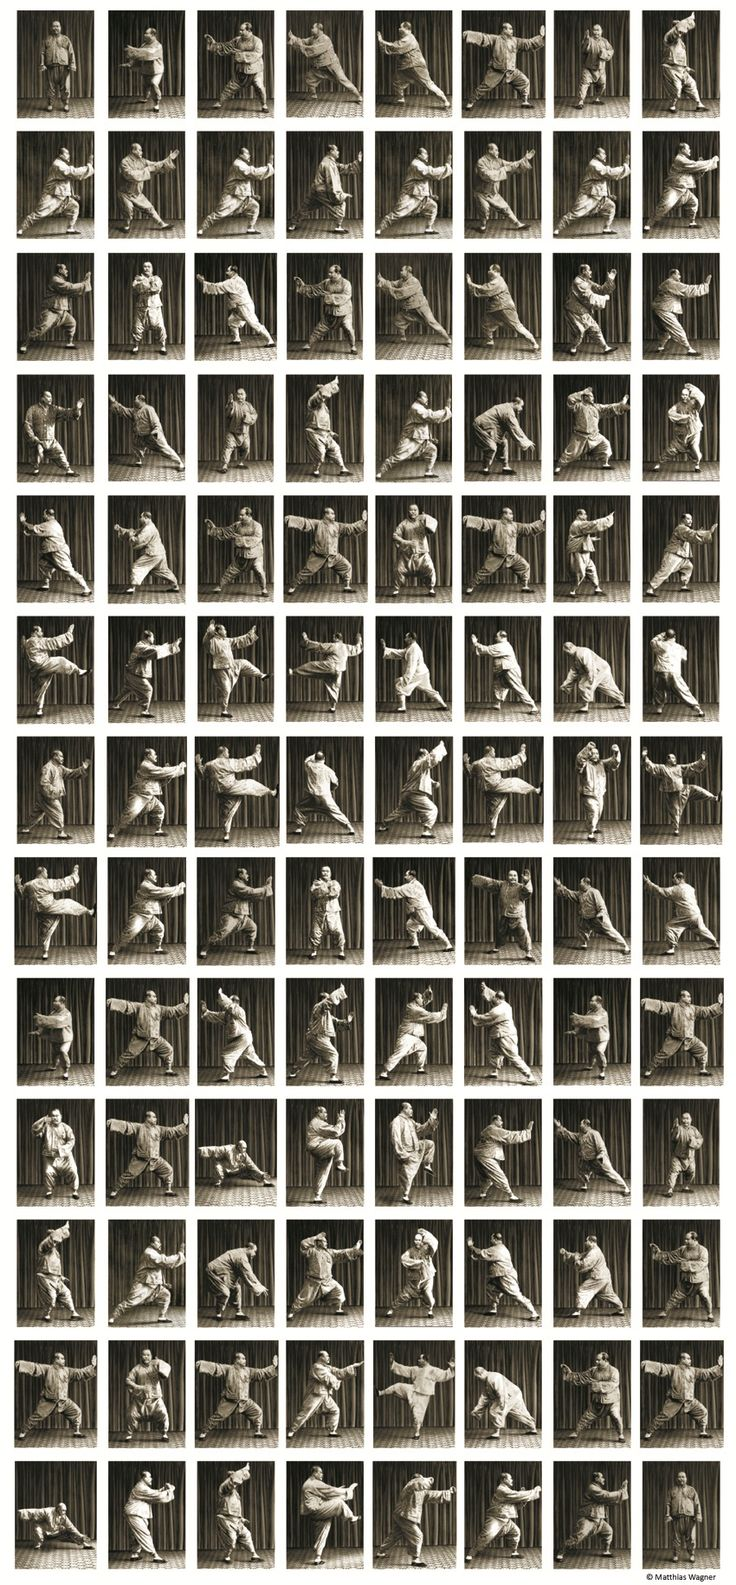 47 best Tai Chi Yang 108 mouvements images on Pinterest   Martial ...